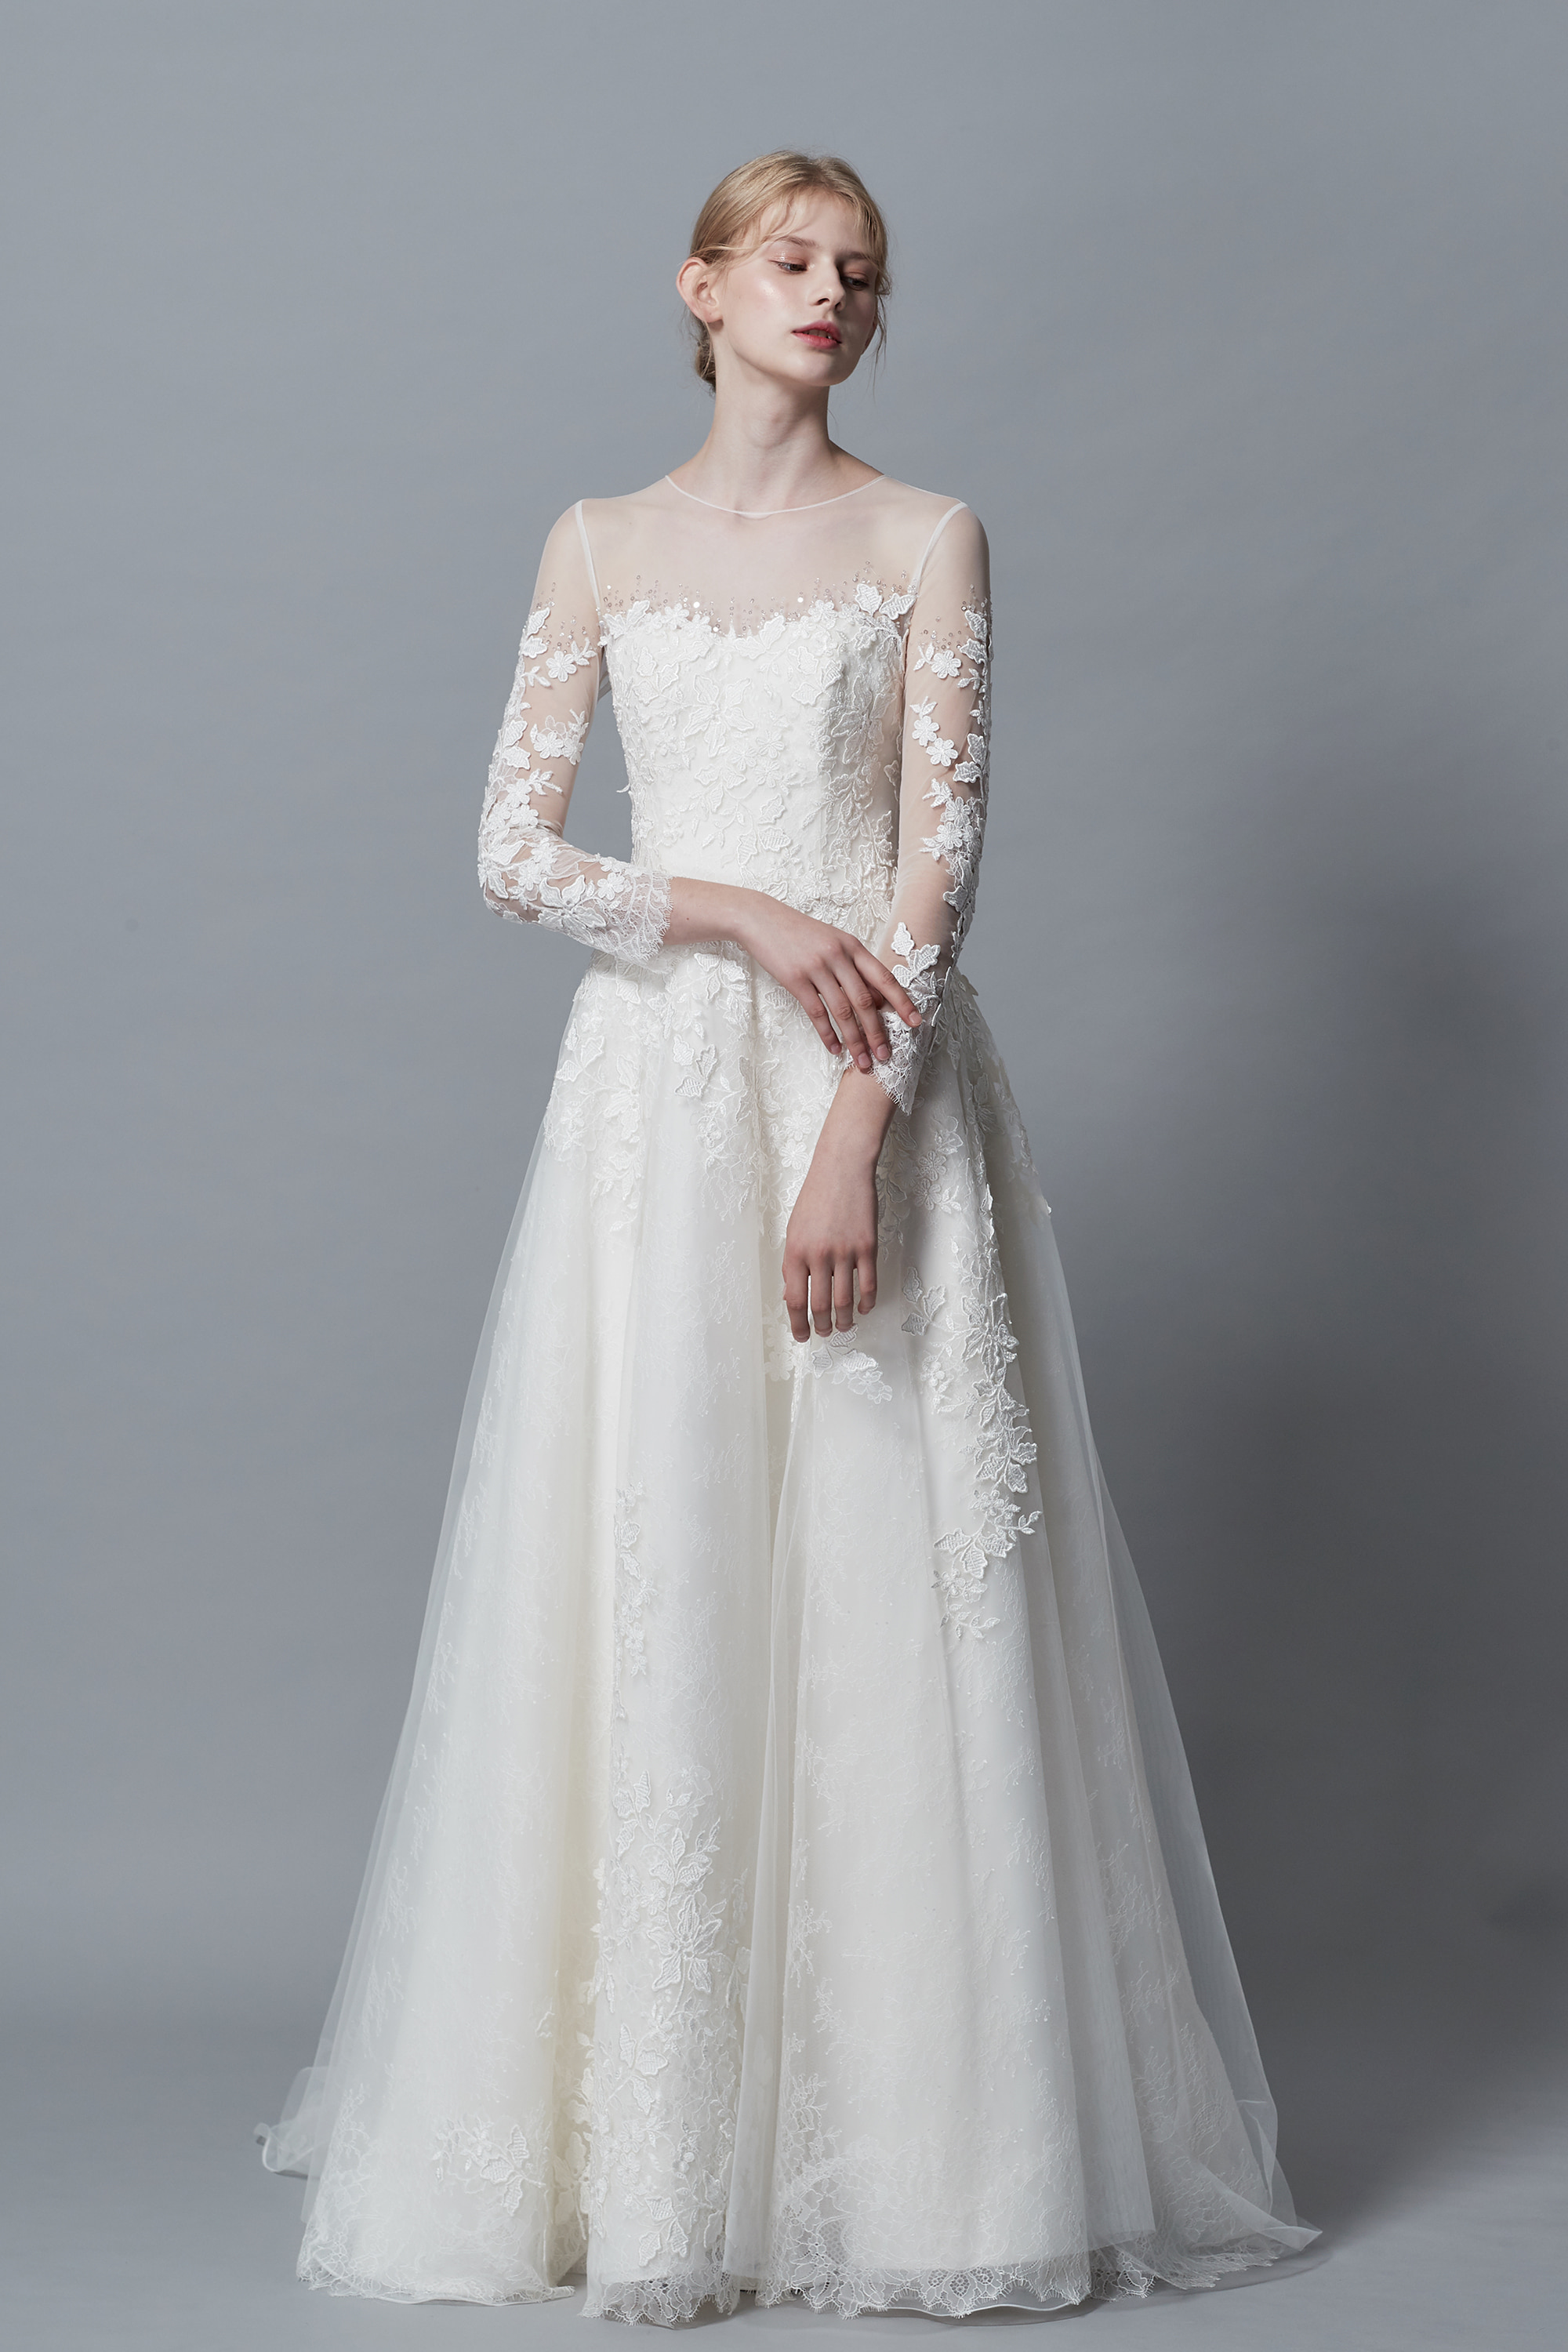 Ciel Blanc,A line wedding dress